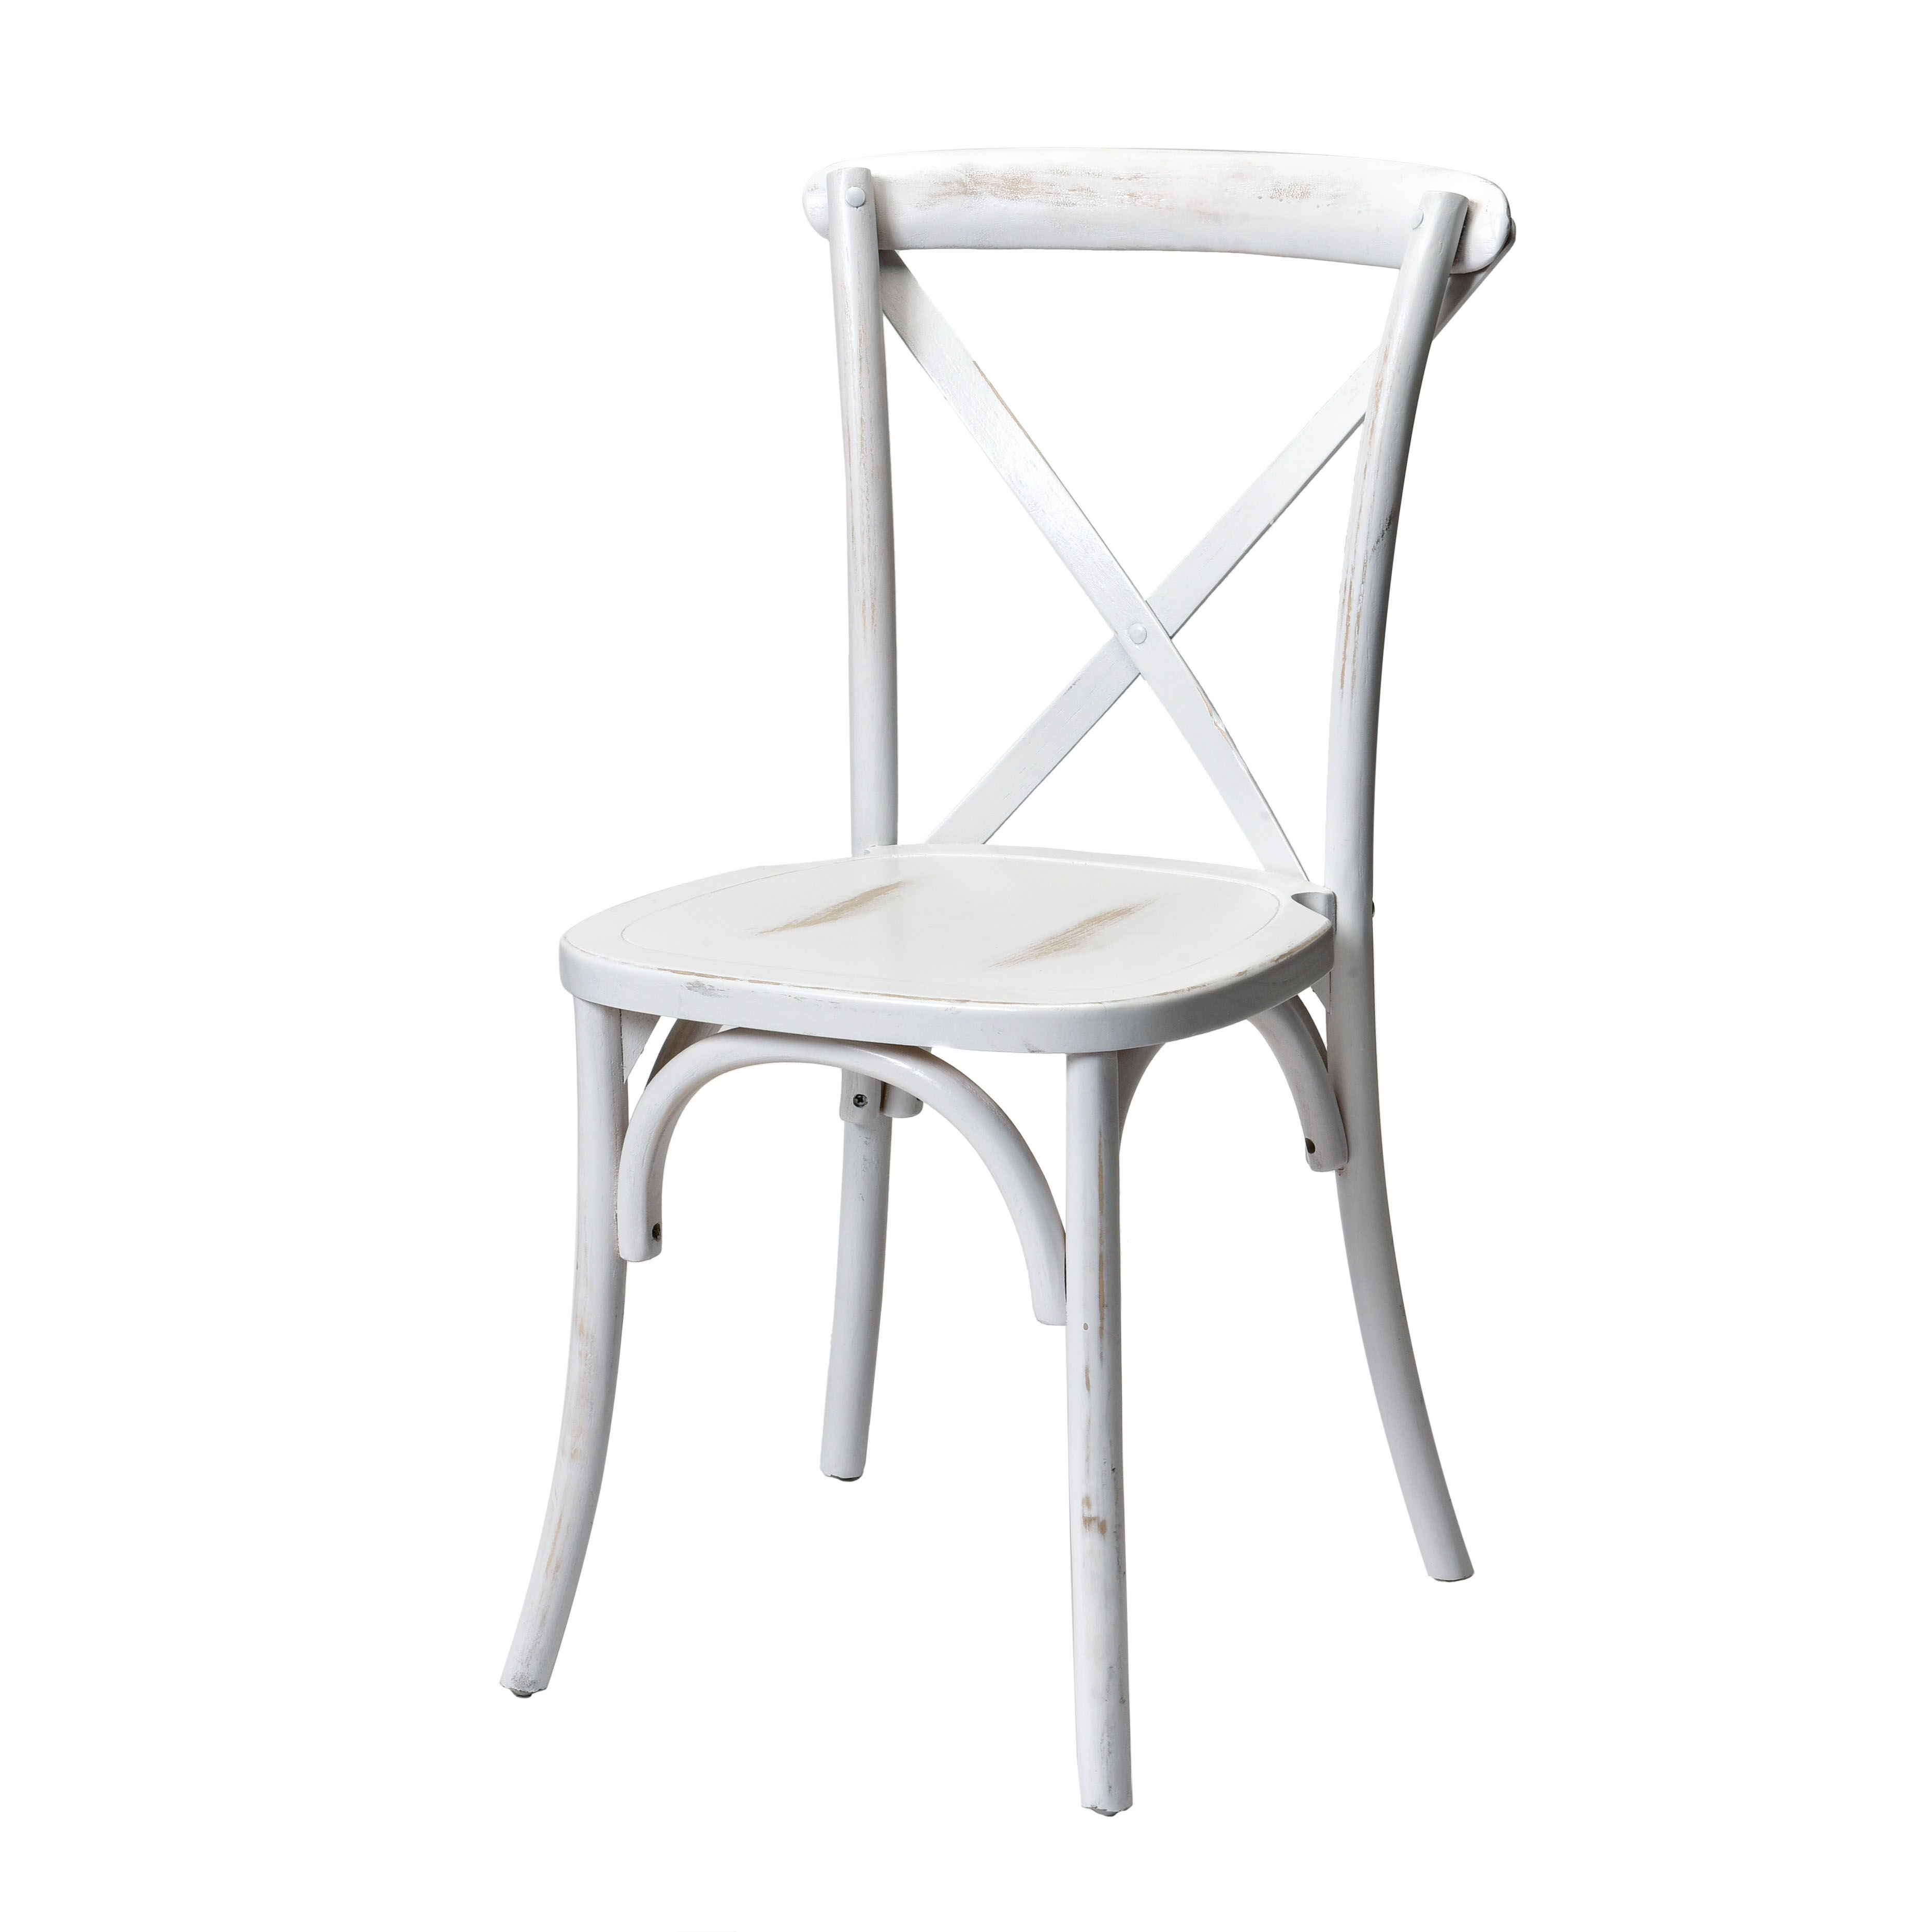 pemberley cross back dining chair white benefits of massage commercial seating products rustic sonoma solid wood